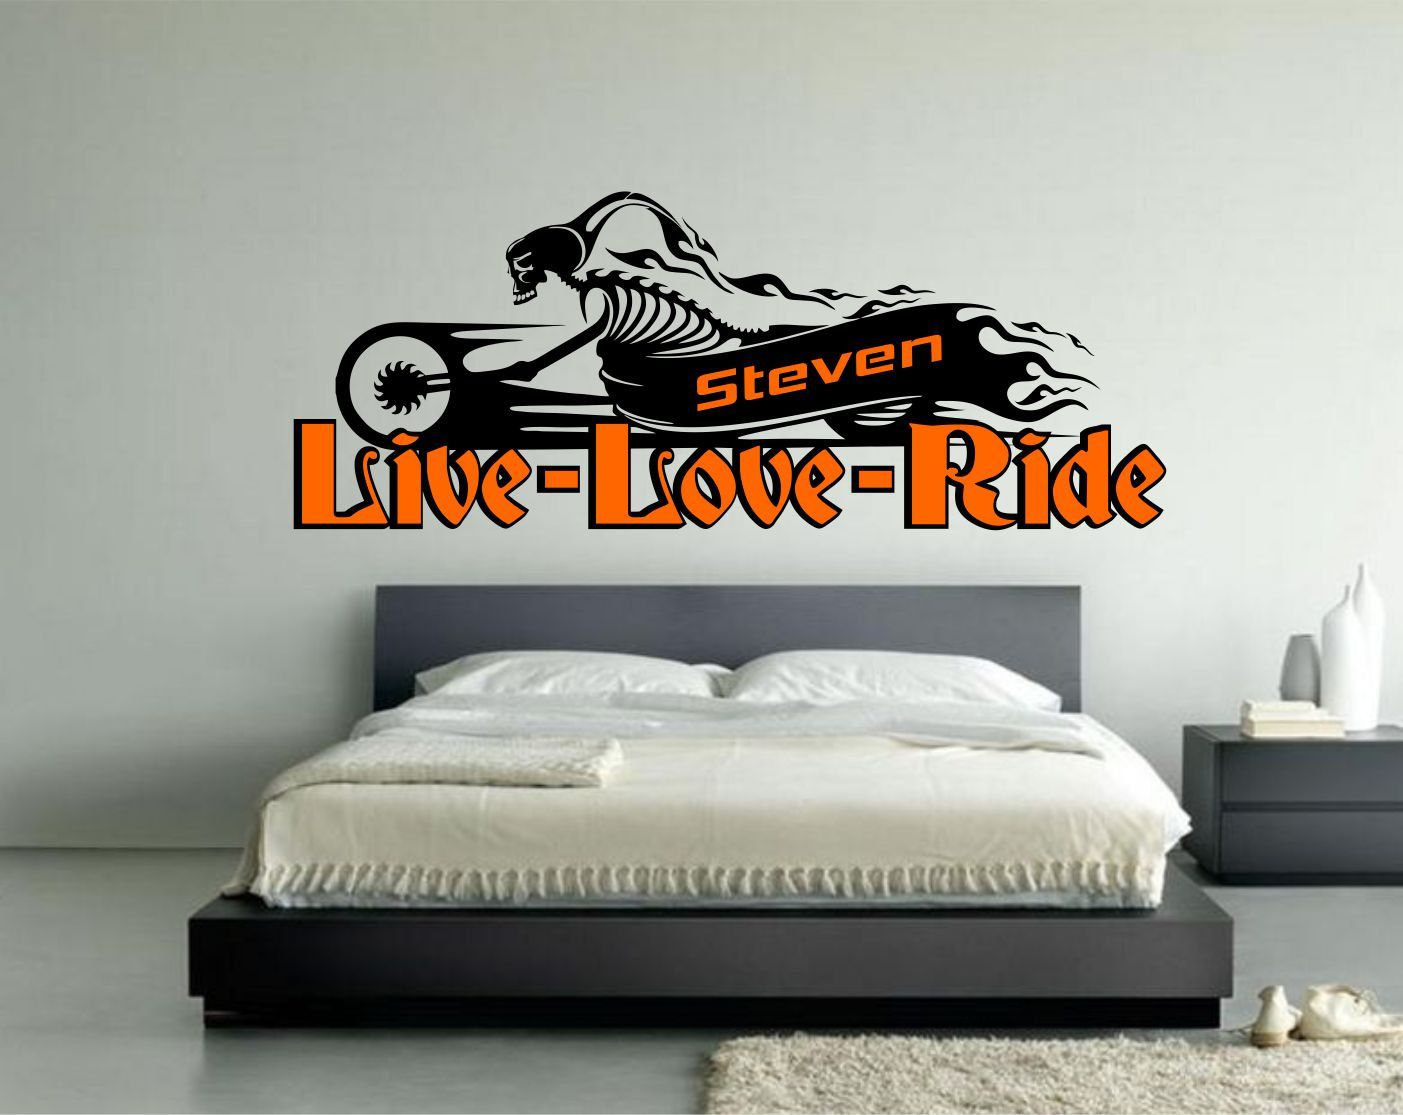 Garage Decor Signs Captivating Motorcycle Live Love Ride Personalized Decal Signpersonalized Design Ideas